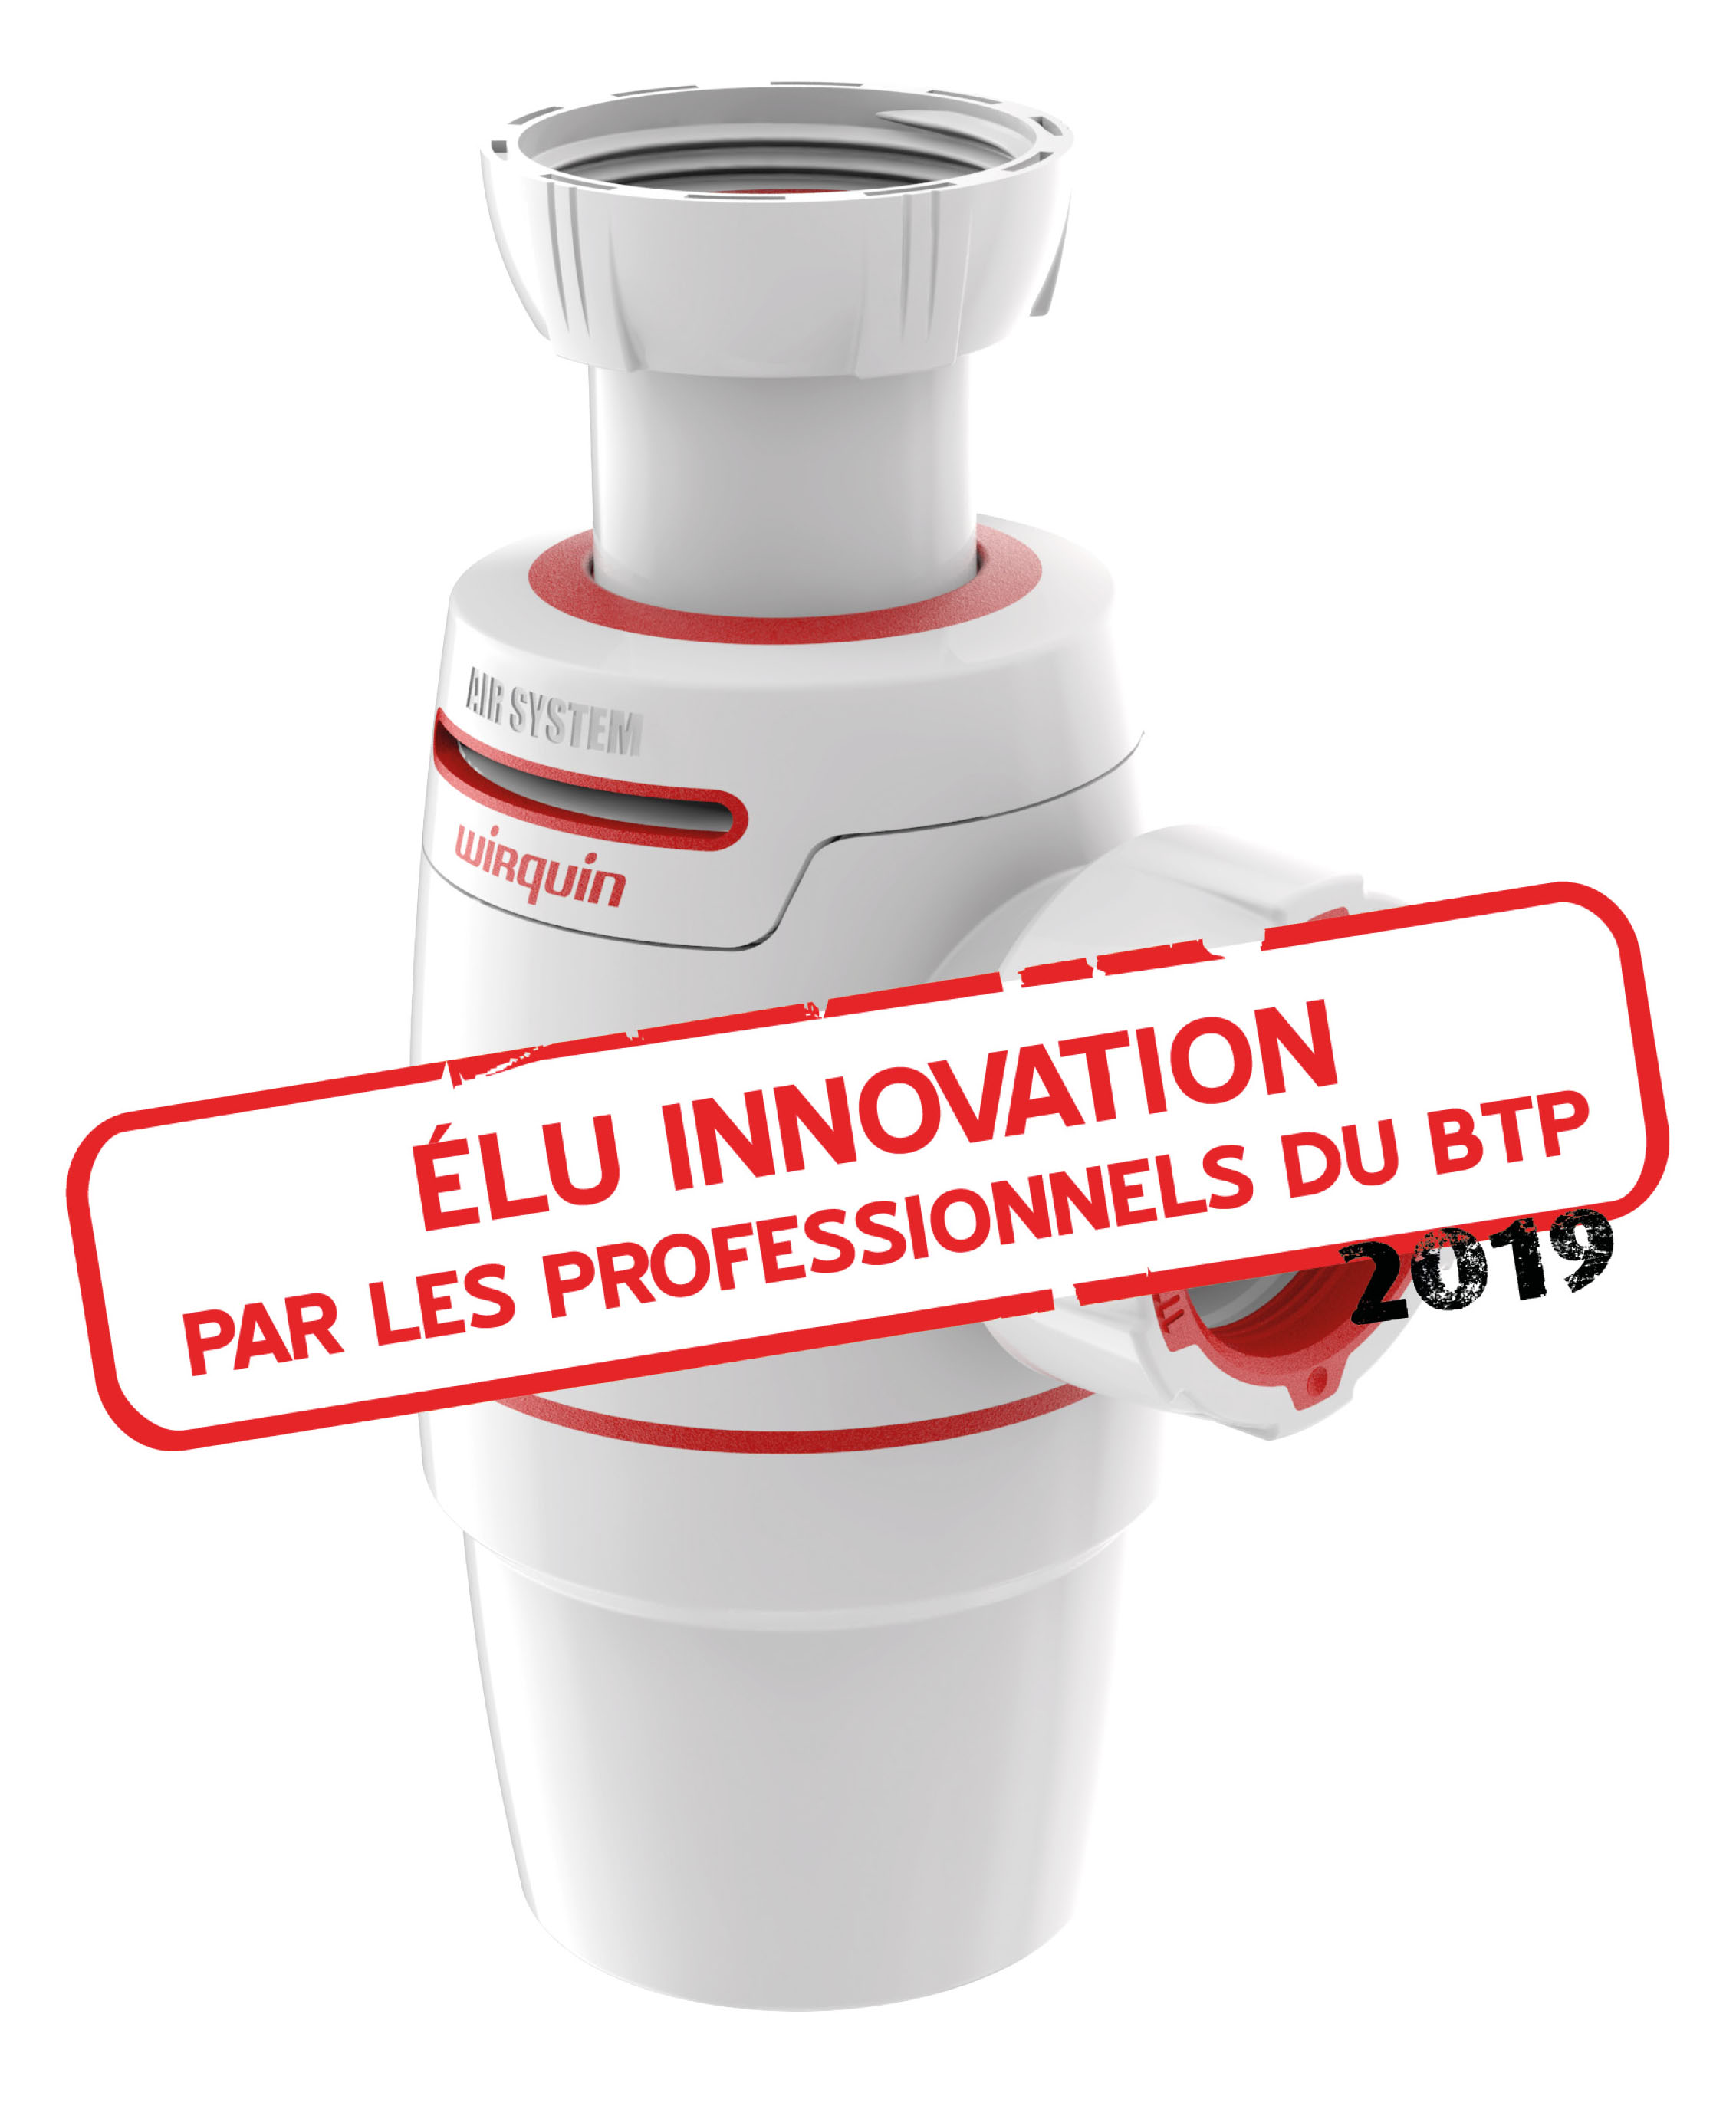 wirquin neo air elu innovation 2019